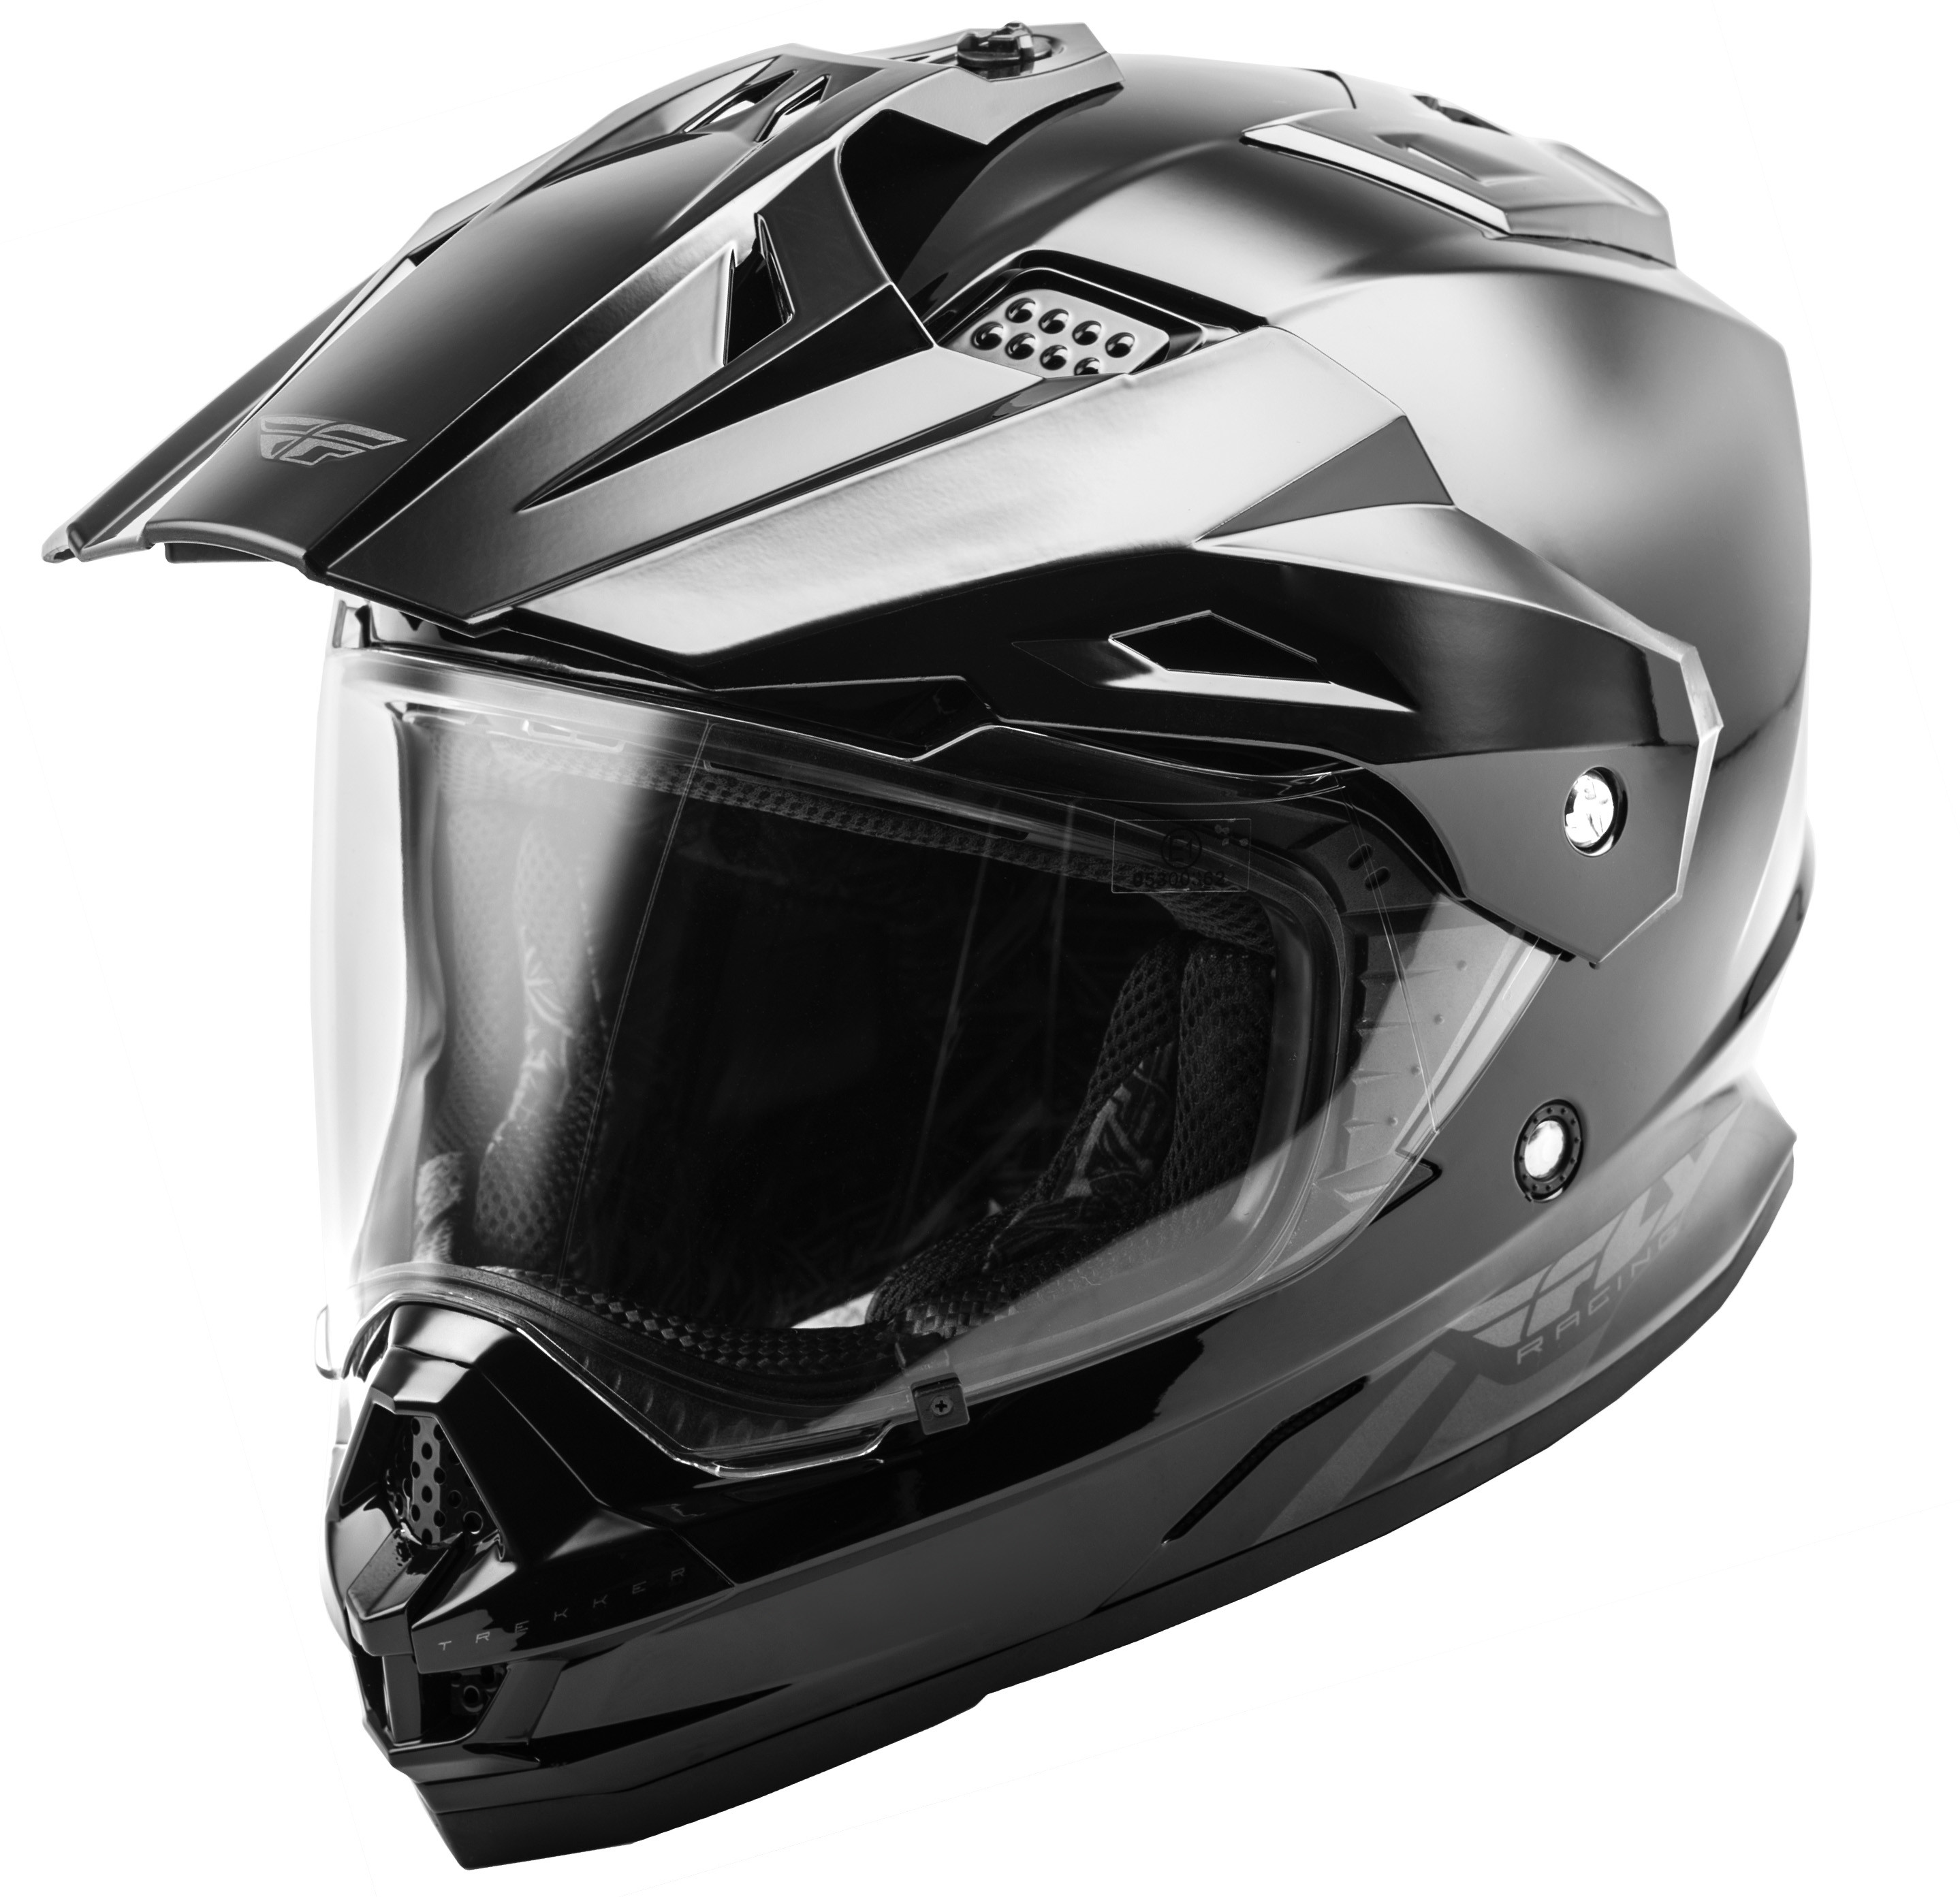 Trekker Solid Helmet Black Md